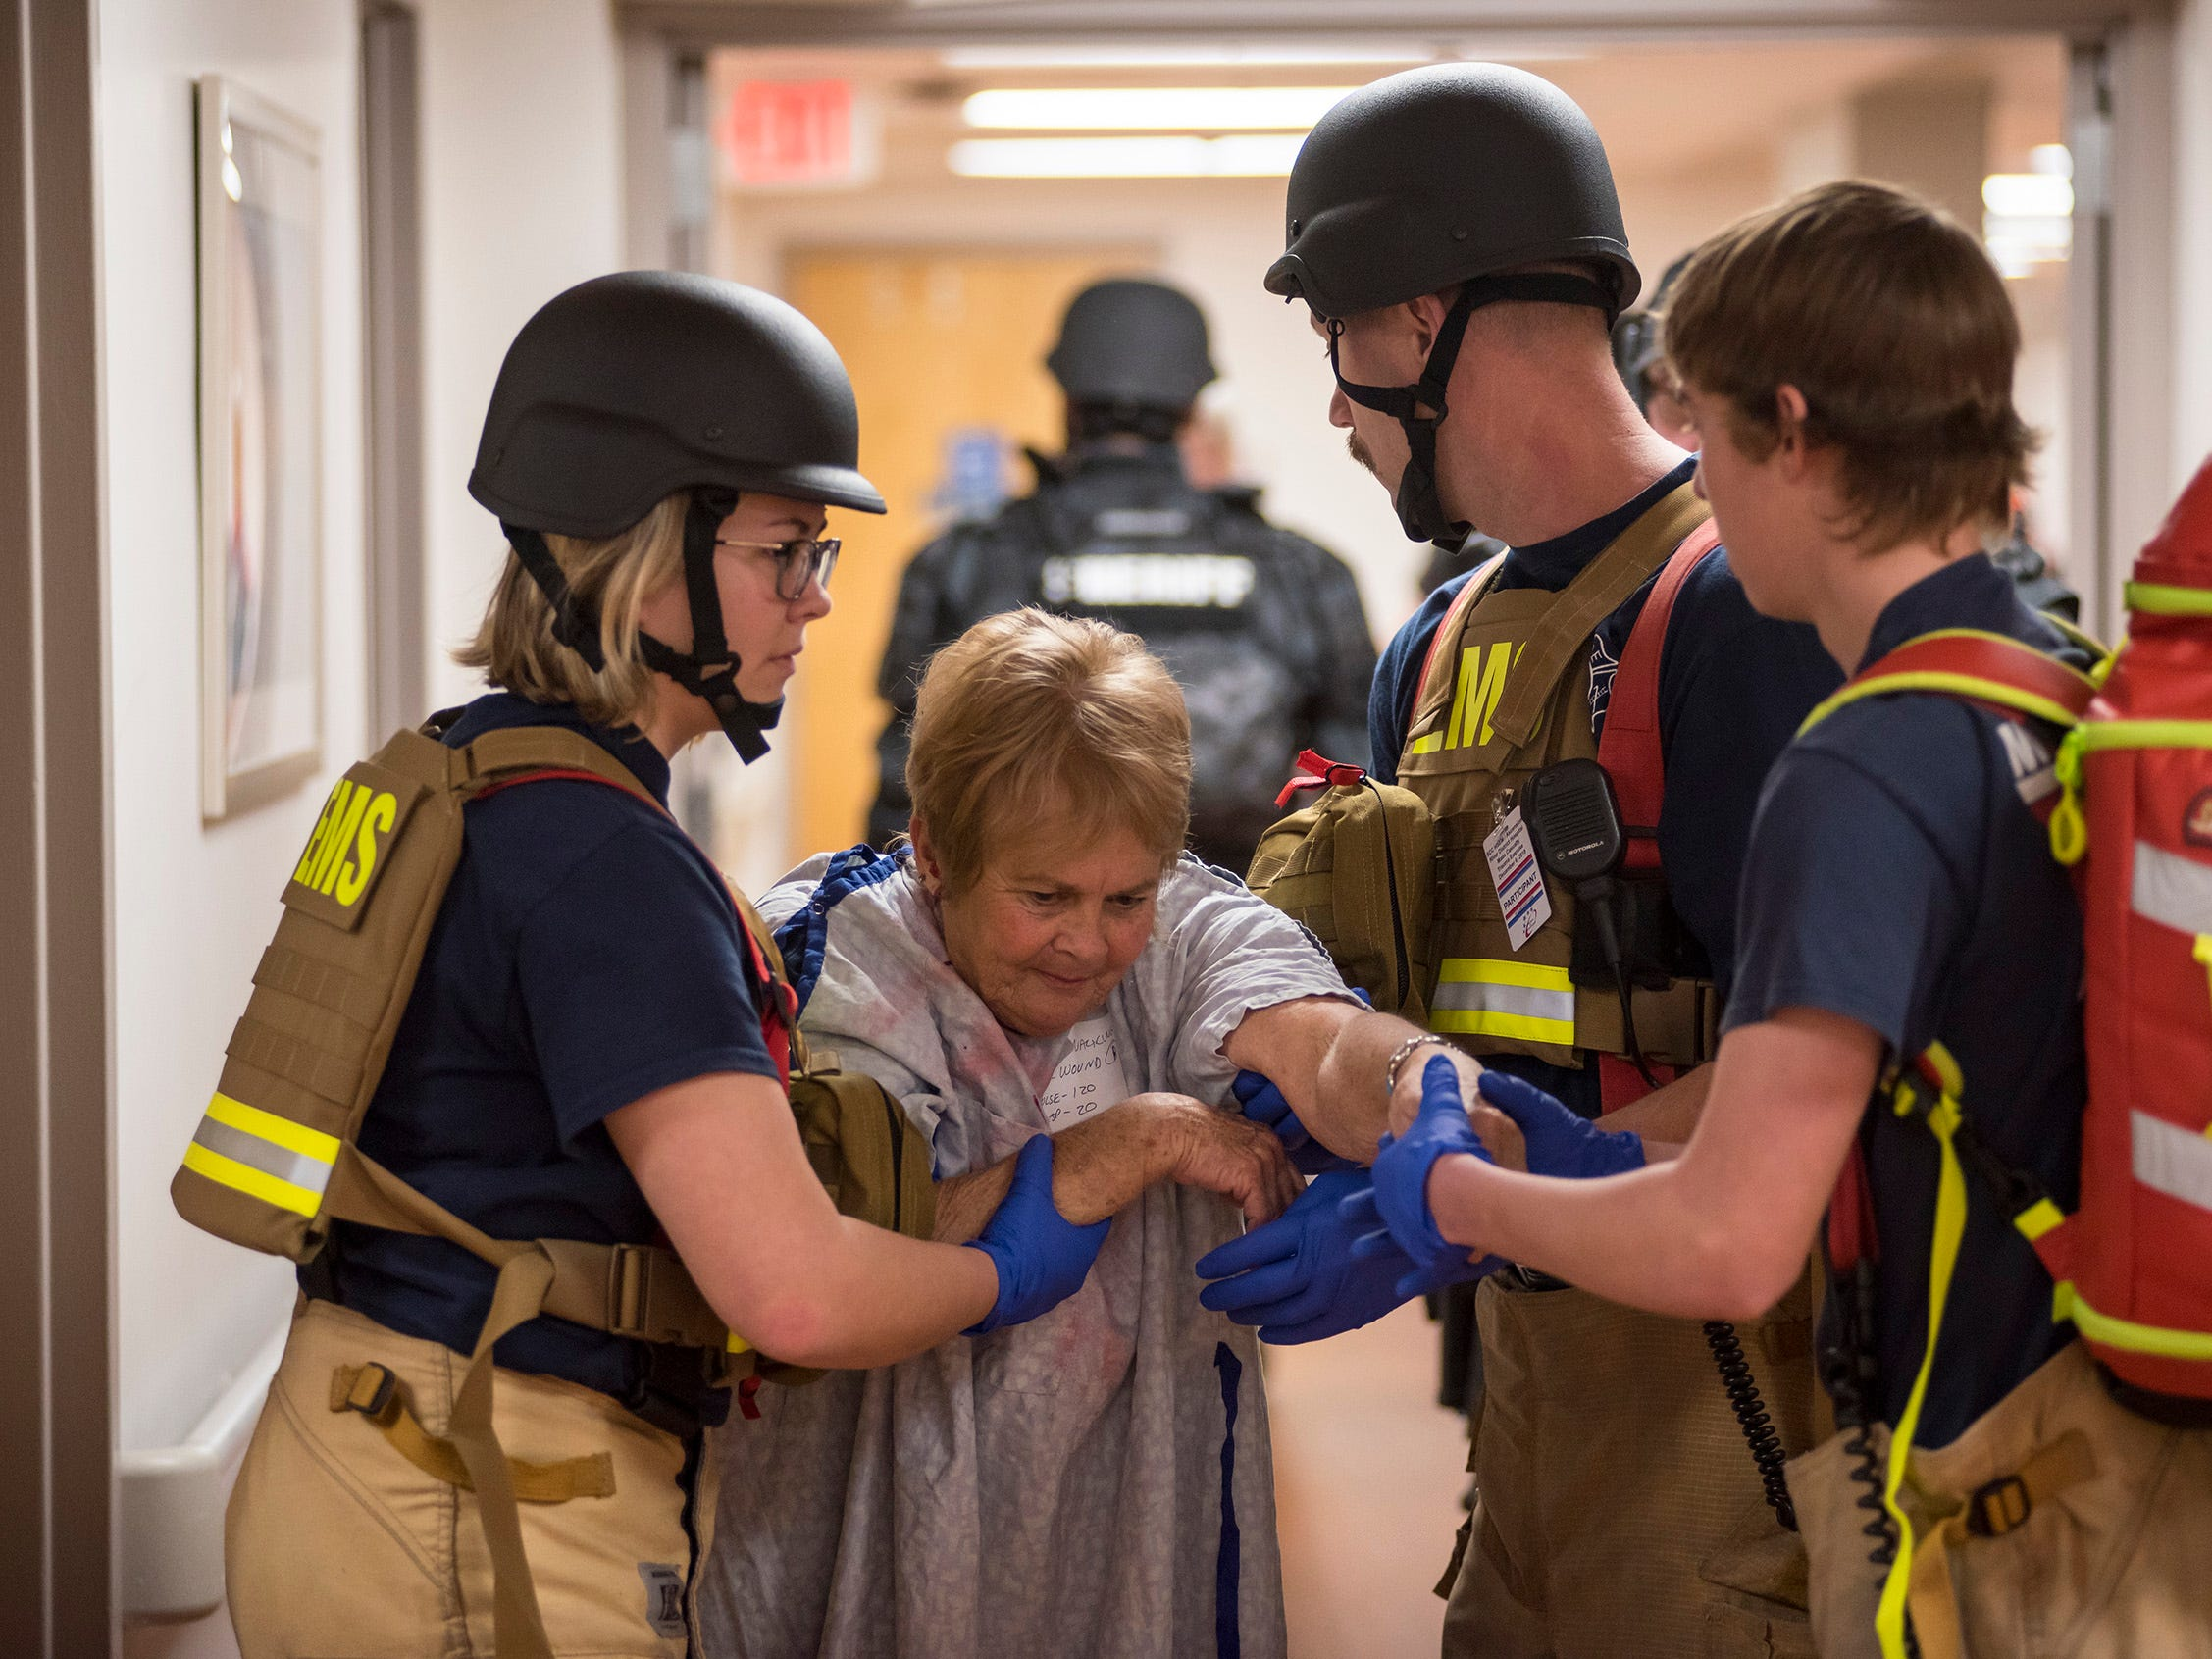 Responders help a gunshot victim during an active shooter training drill Thursday, Dec. 6, 2018 at Ascension River District Hospital in East China.